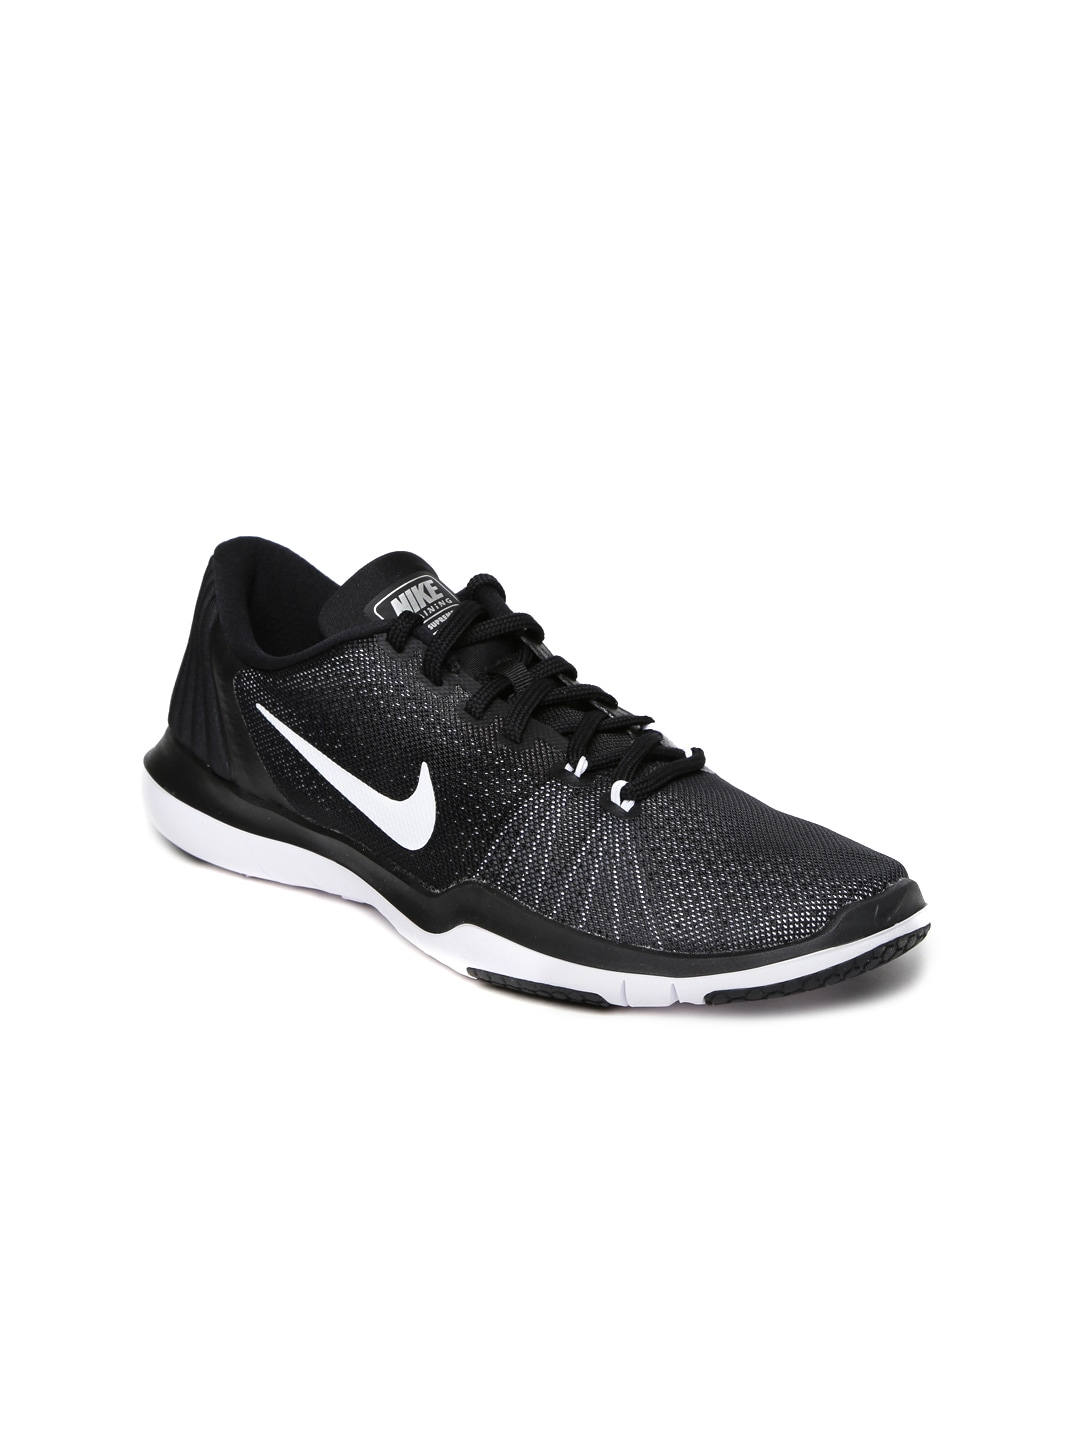 45122a2788def1 Nike 852467-001 Women Black Flex Supreme Tr 5 Training Shoes- Price in India